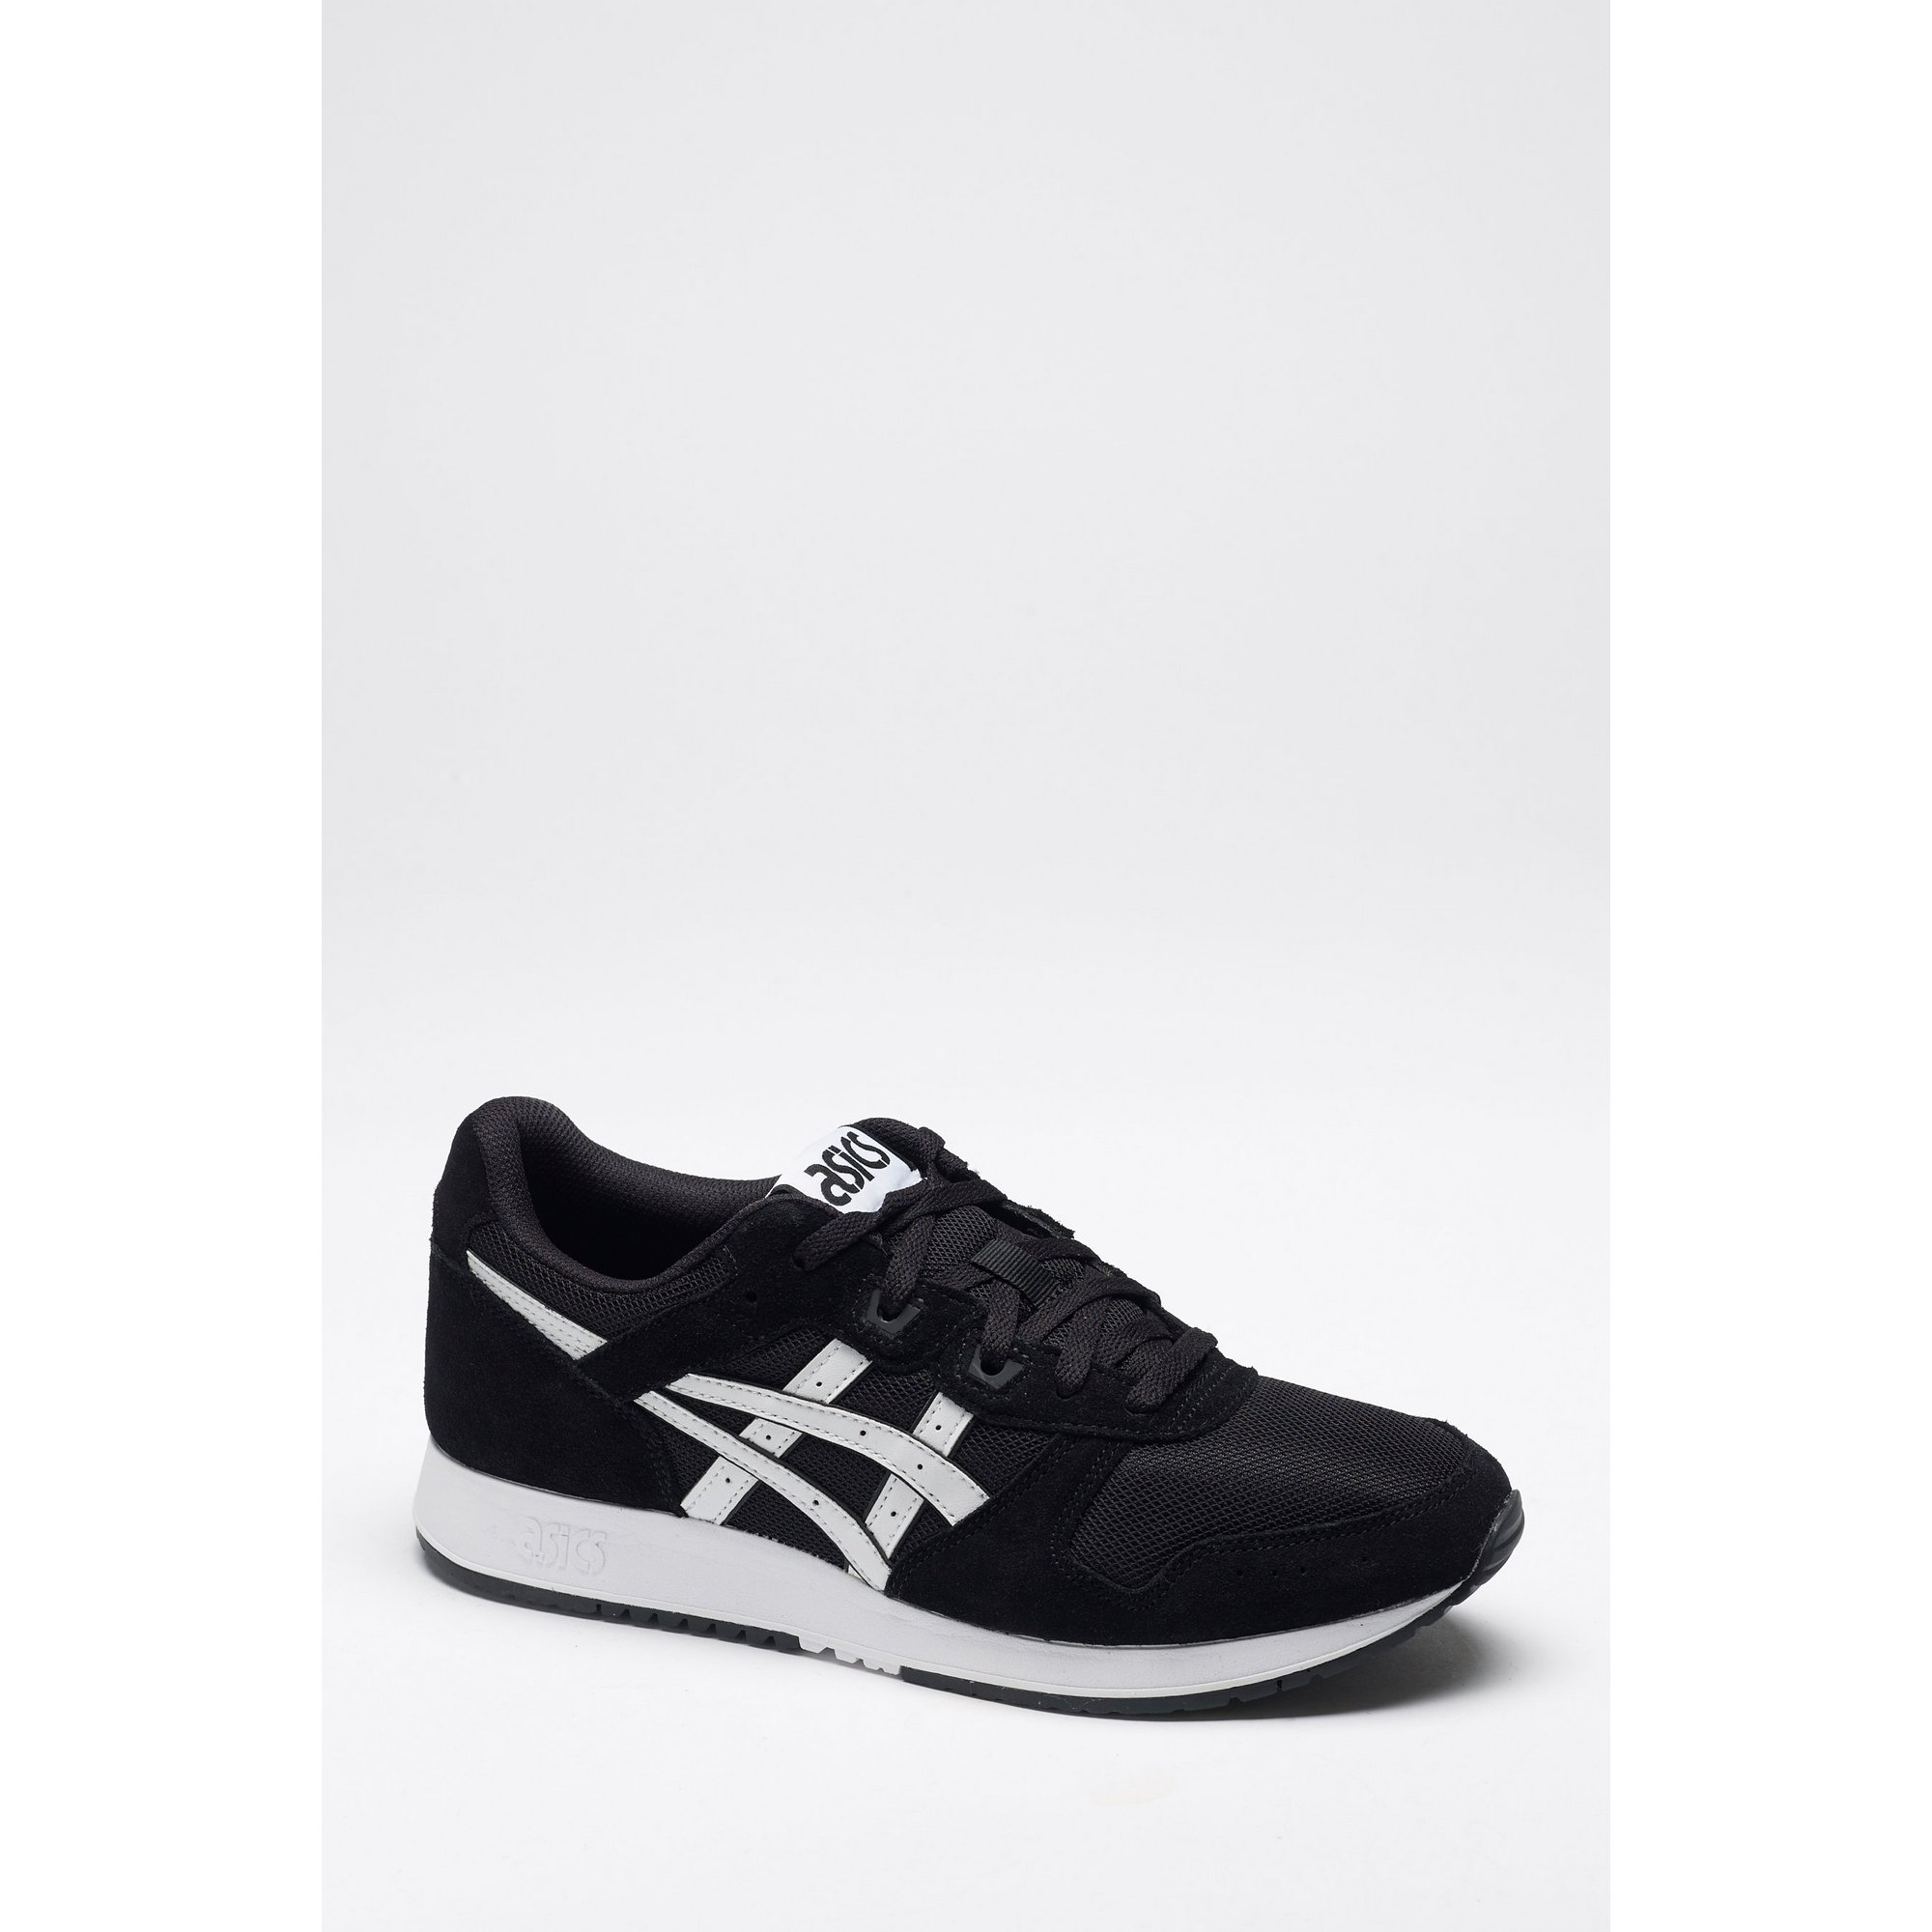 Image of Asics Lyte Classic Trainers